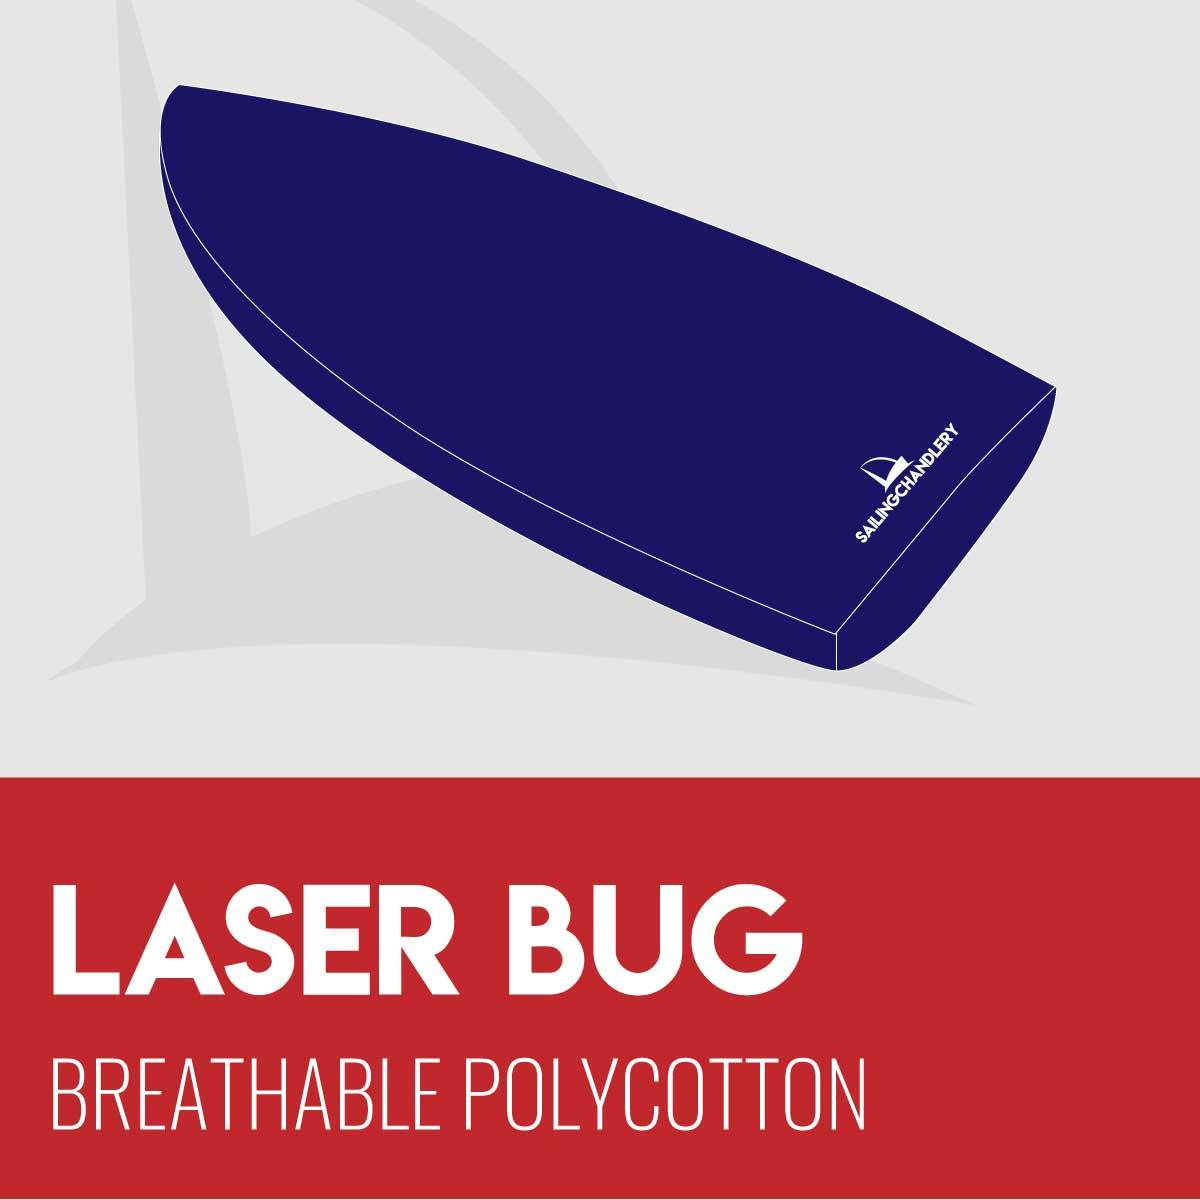 Laser Bug Boat Cover - Breathable Polycotton